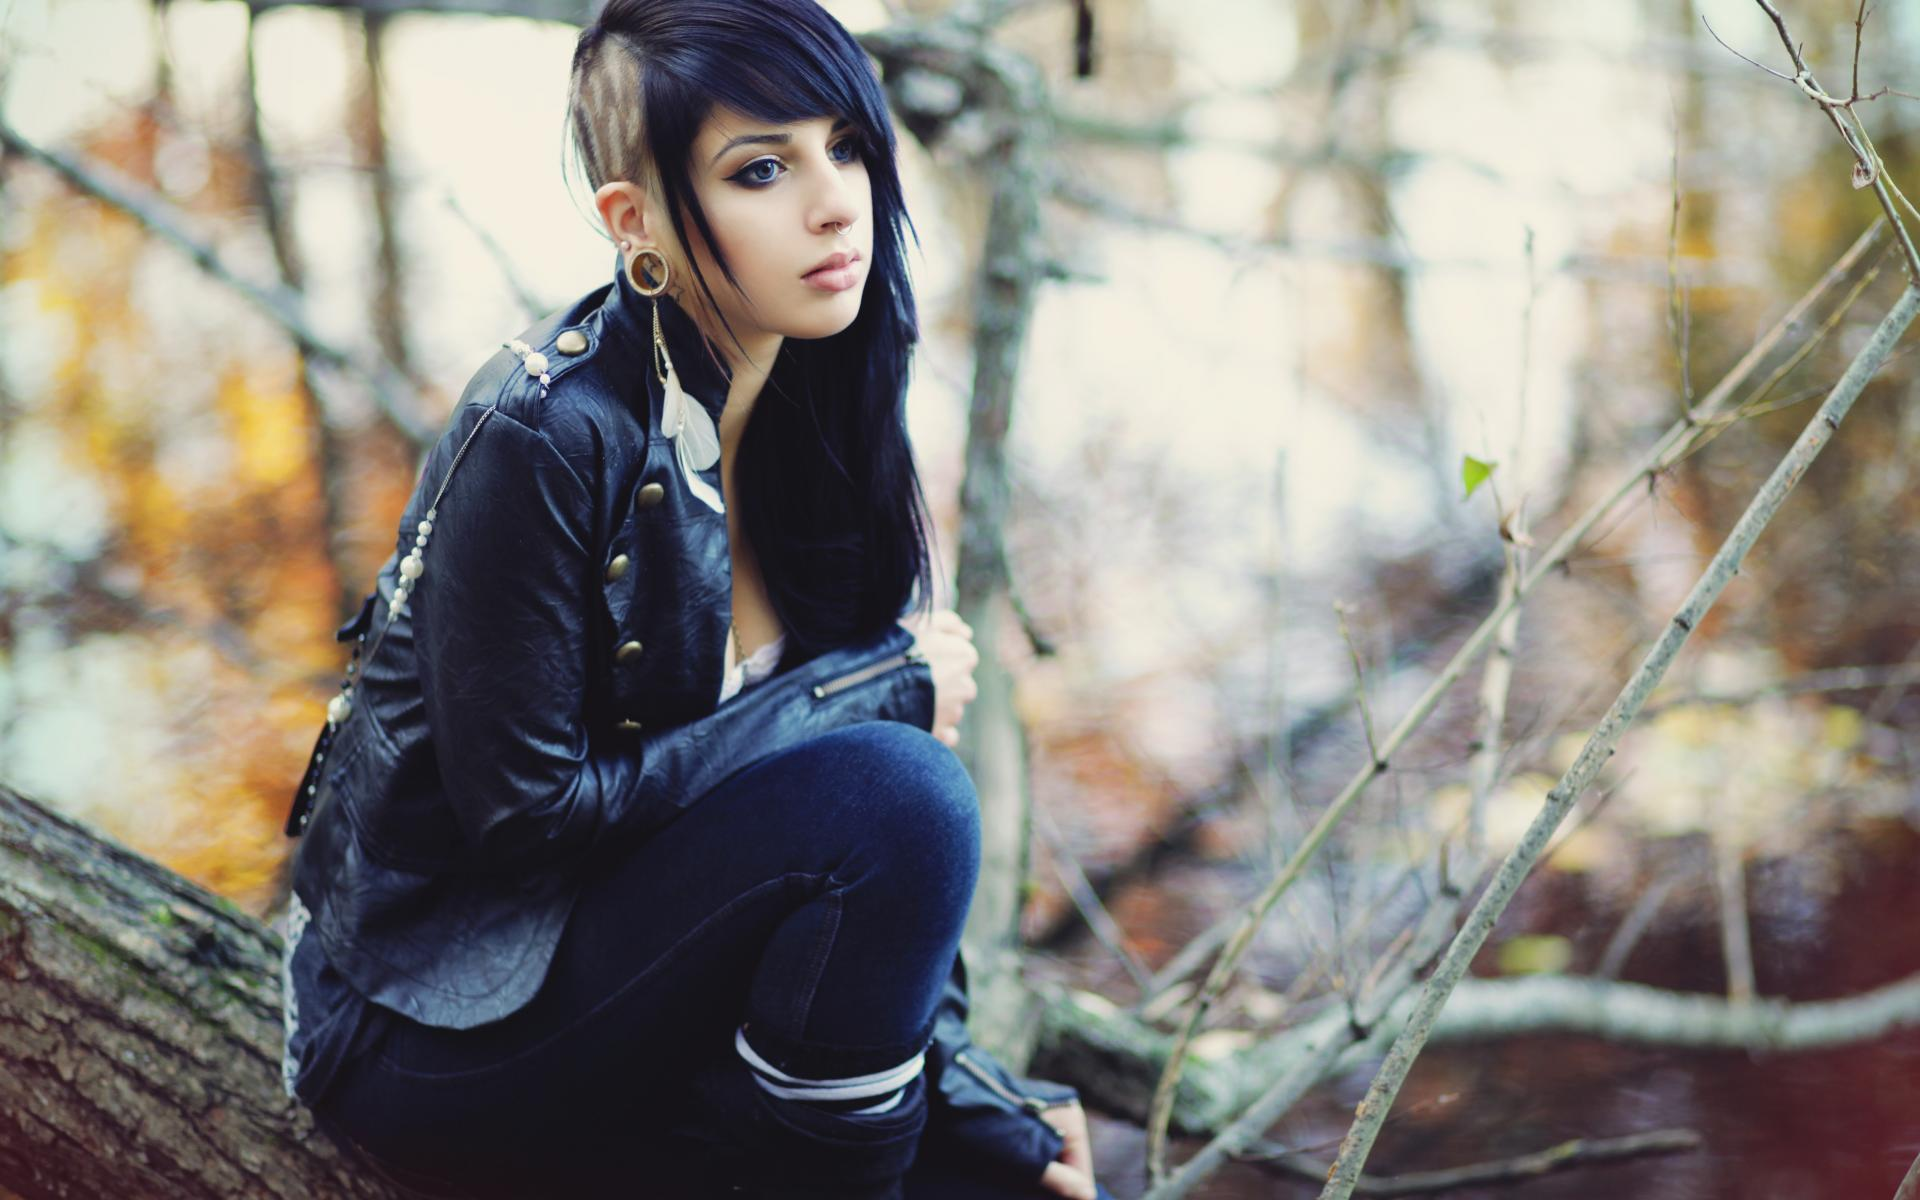 Download Sad Emo Girl Wallpaper Emo Hd Wallpaper Background Image 1920x1200 Id